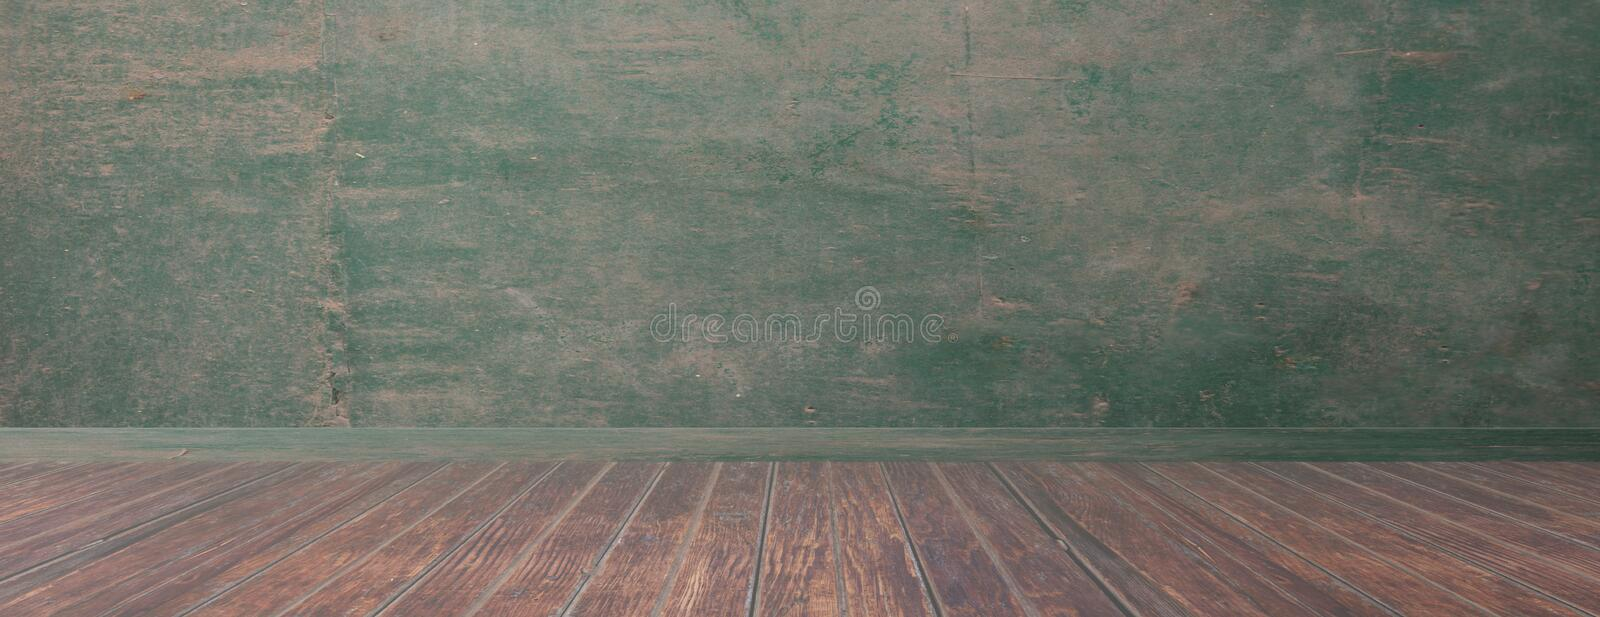 Empty room, rustic wood floor and green wall, banner, copy space. 3d illustration vector illustration